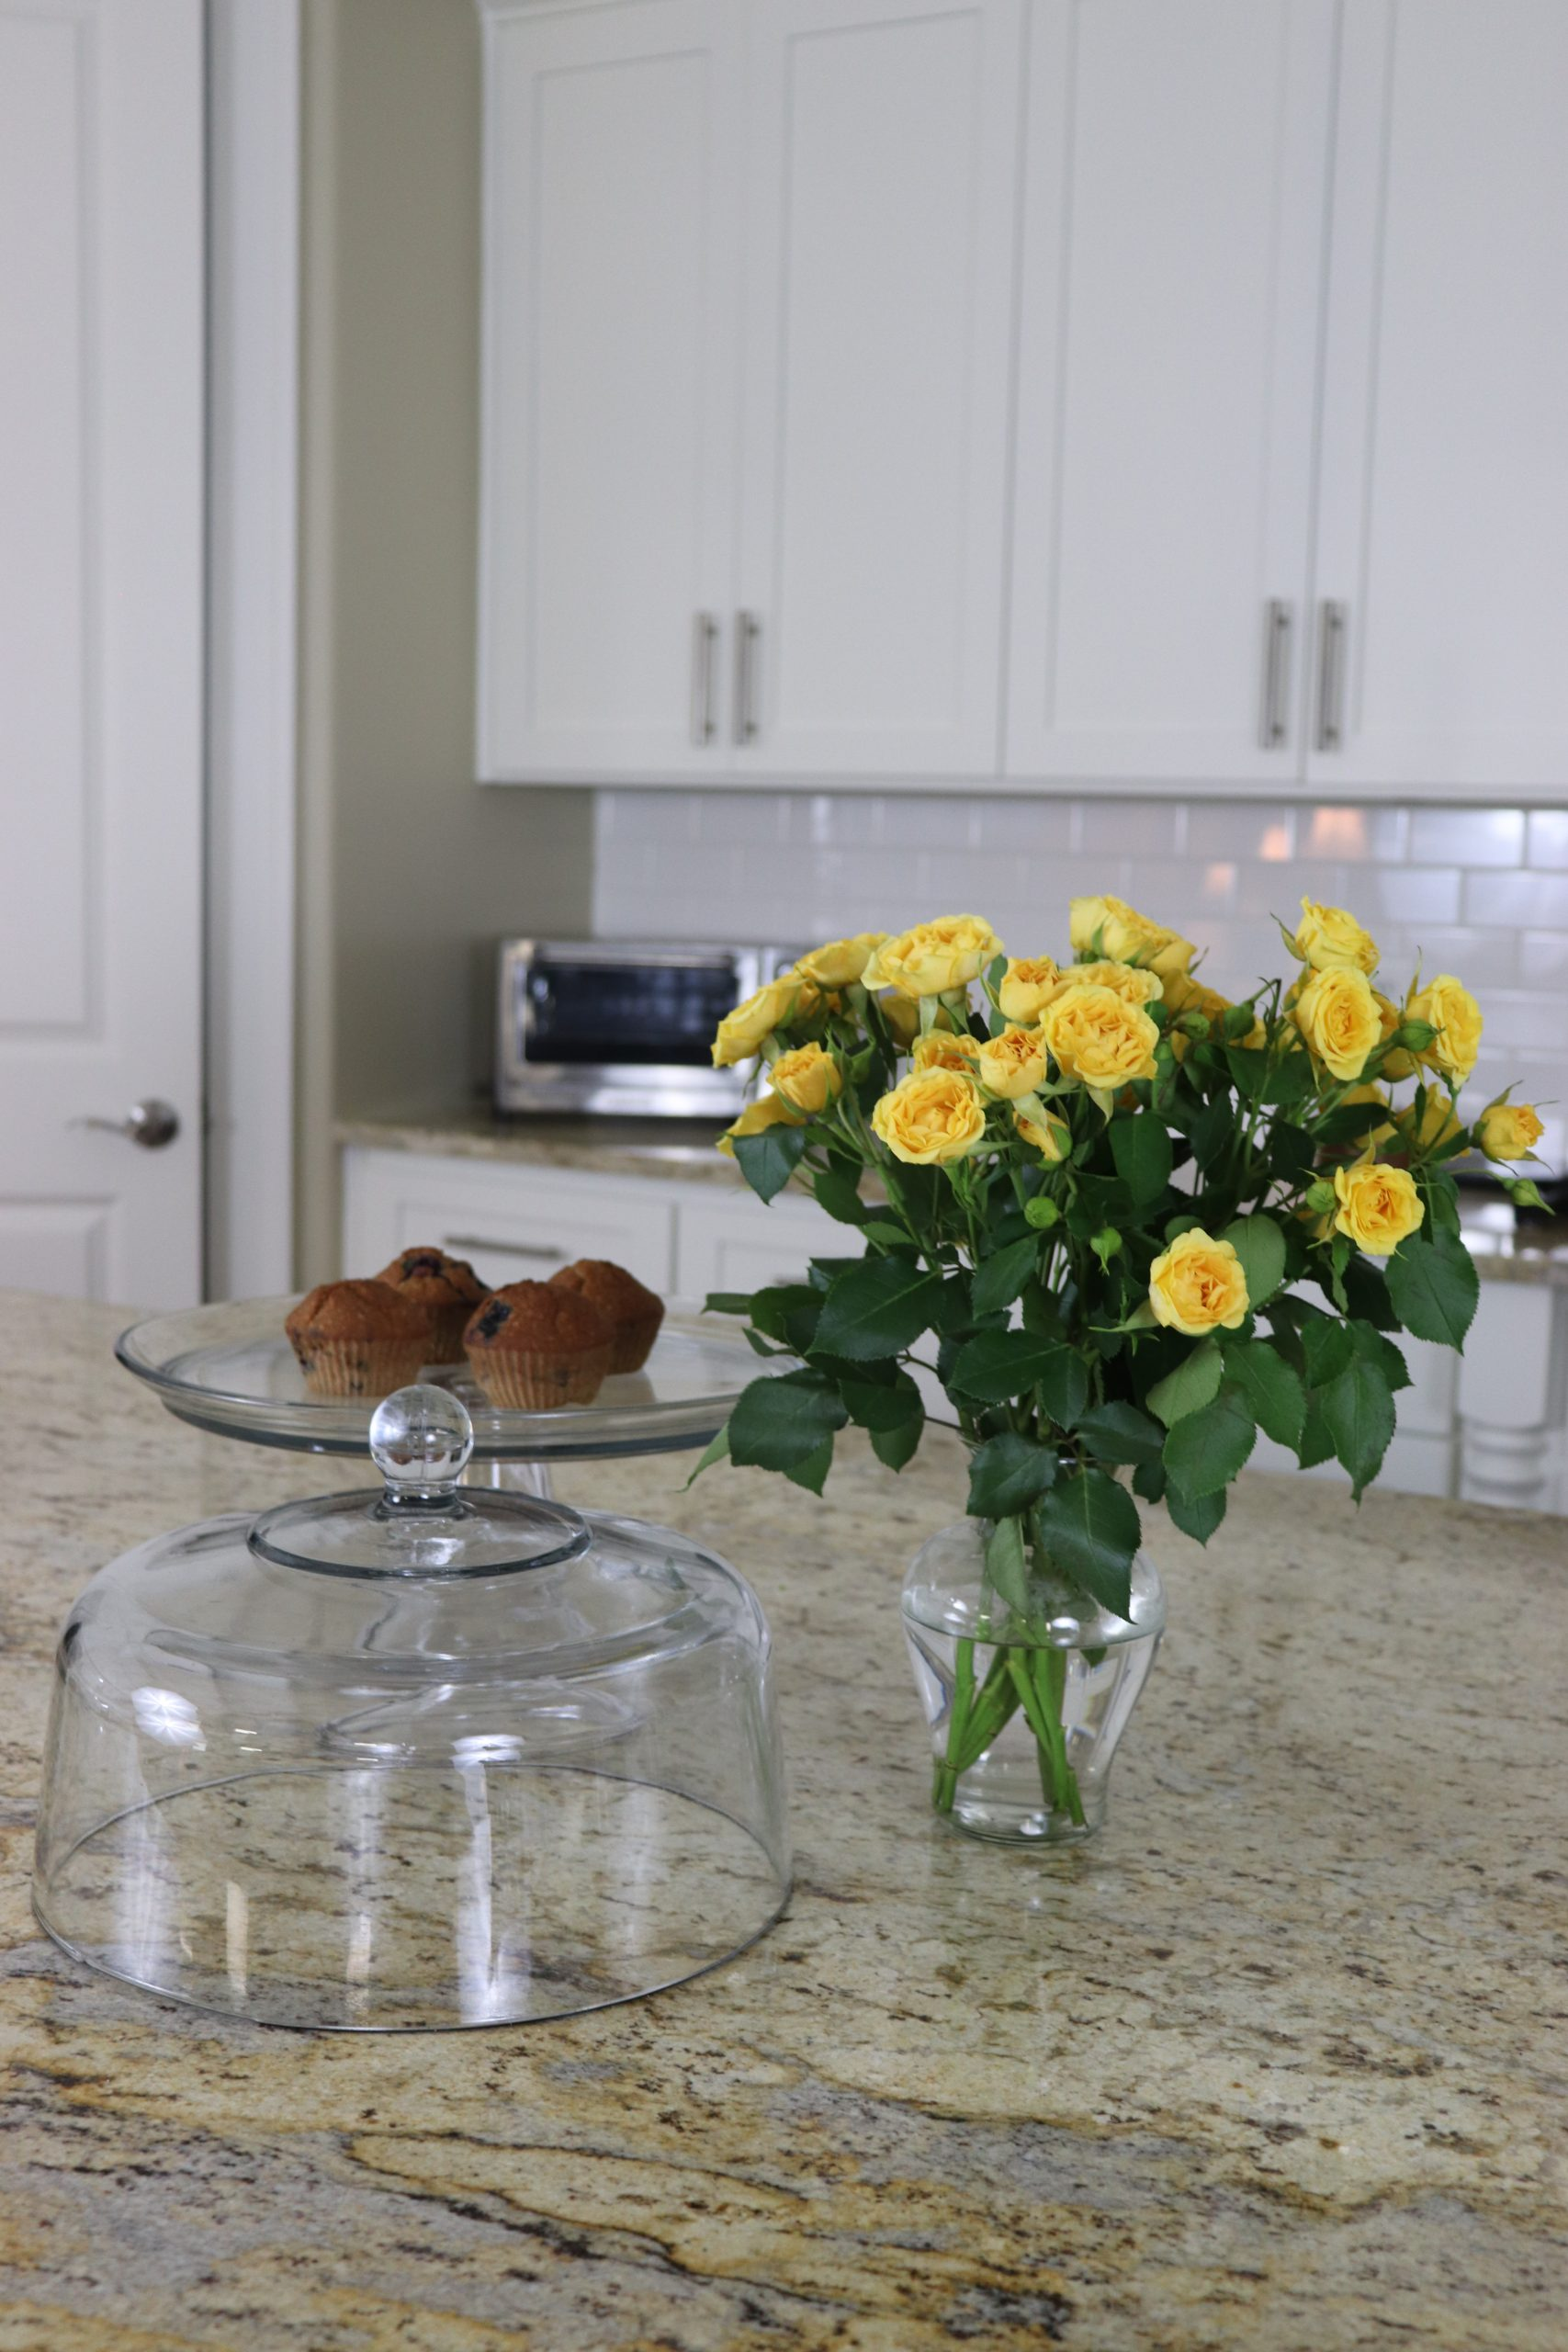 clear glass cake plate with the cover off sitting on a kitchen countertop next to a vase of yellow flowers muffins are breakfast meal prep item